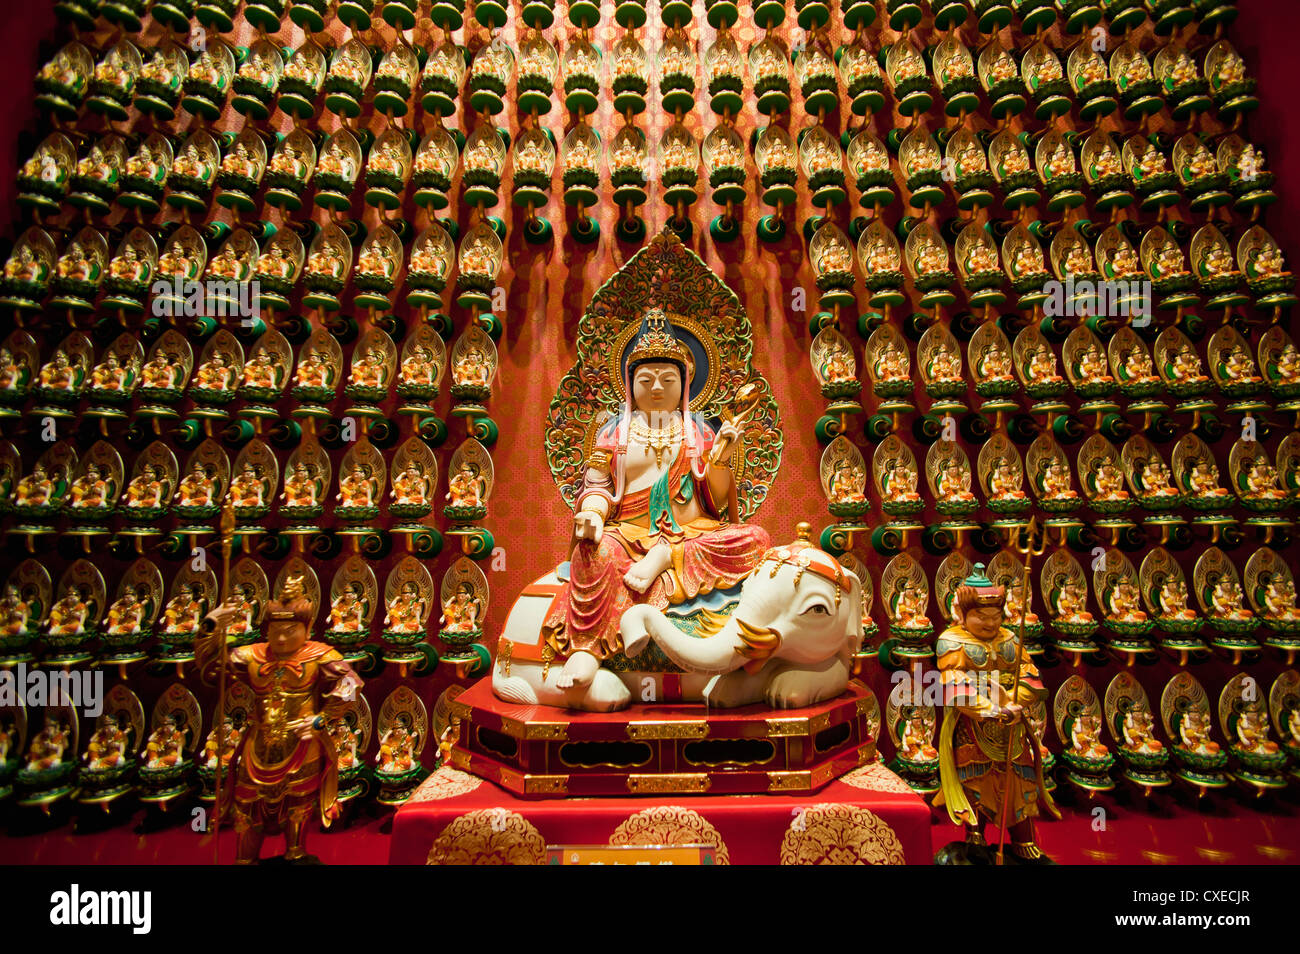 Wall of gold statues at the Buddha Tooth Relic Museum in Chinatown, Singapore, Southeast Asia, Asia - Stock Image